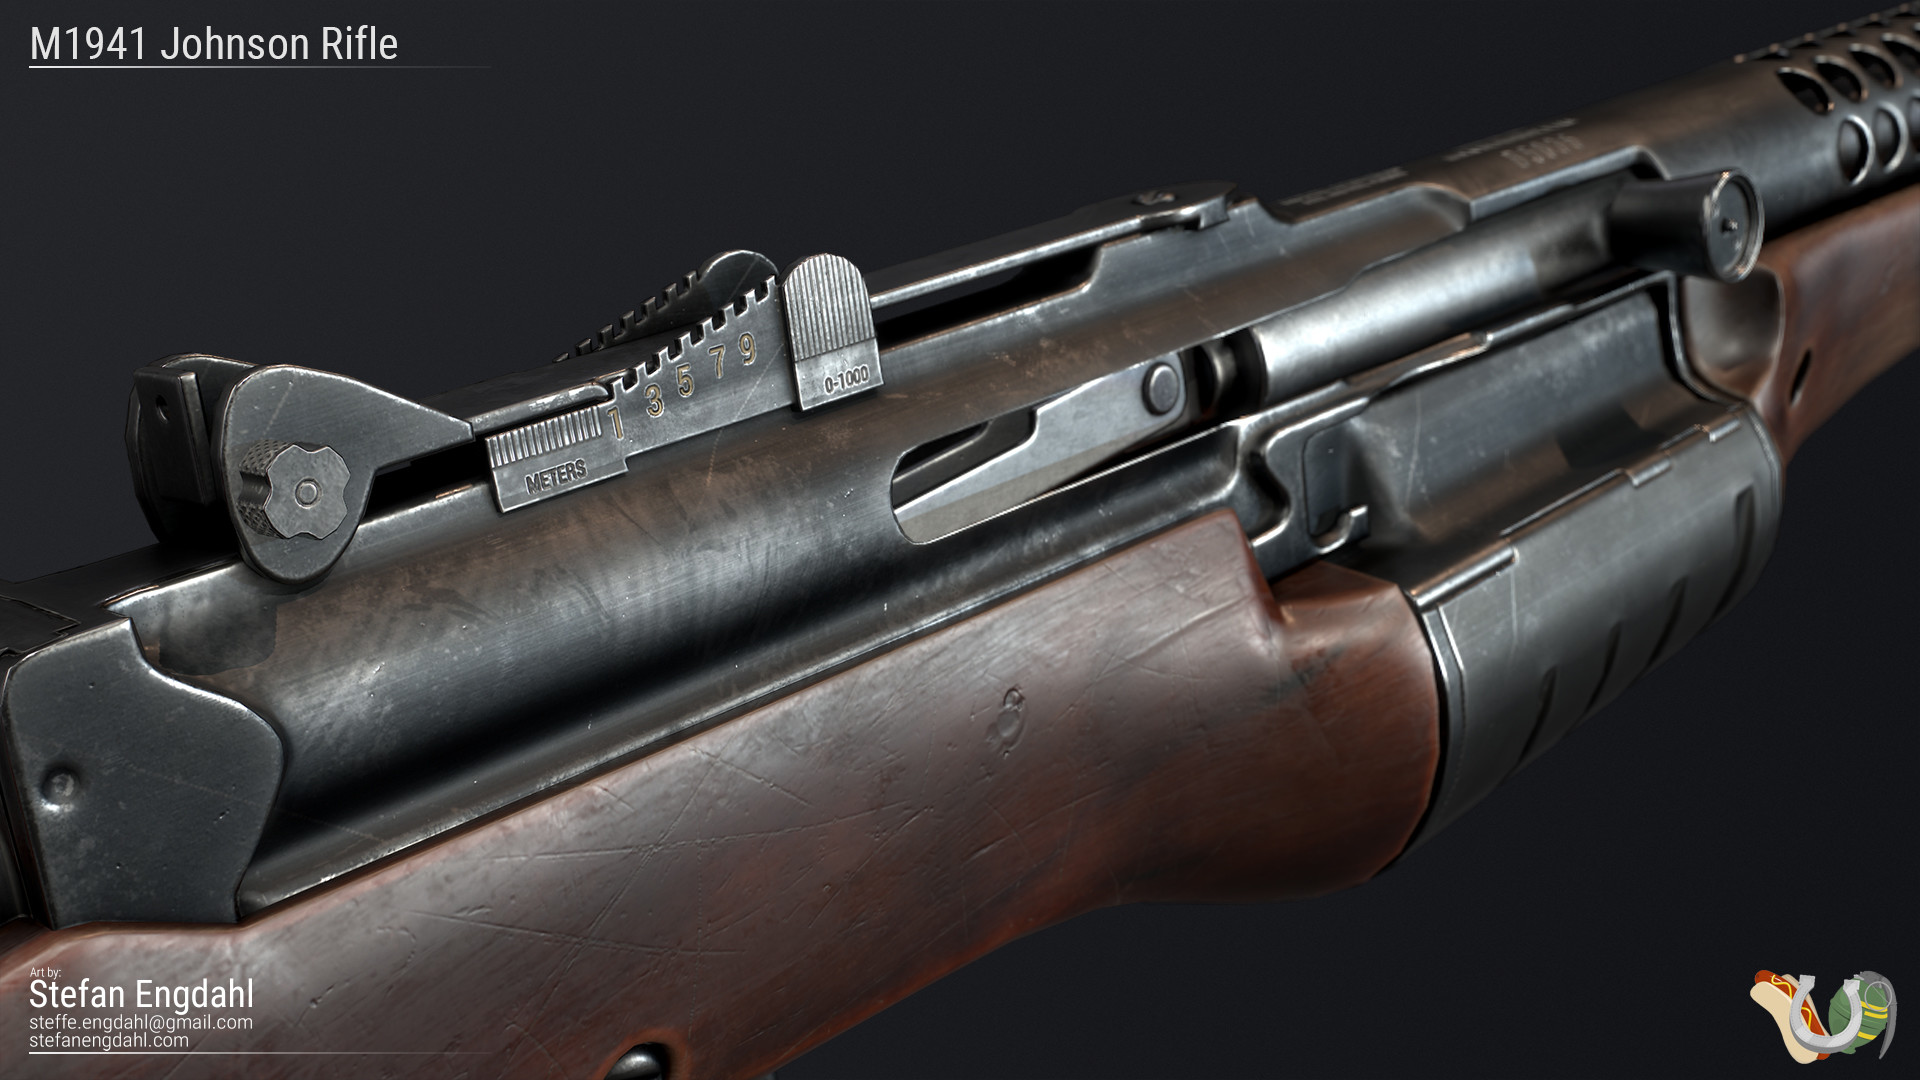 Stefan engdahl m1941johnsonrifle3